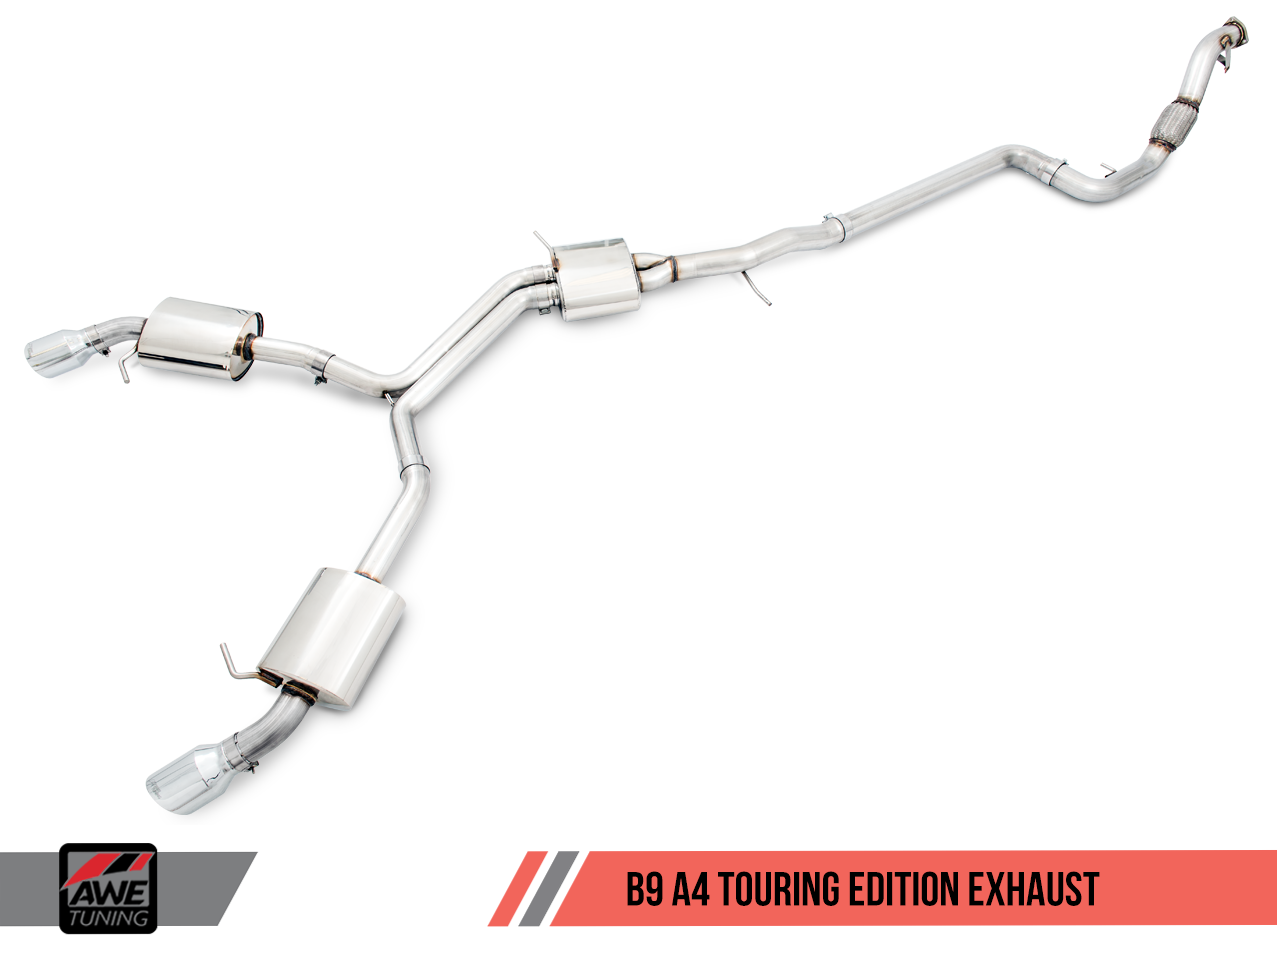 AWE Touring Edition Exhaust for Audi A4 B9